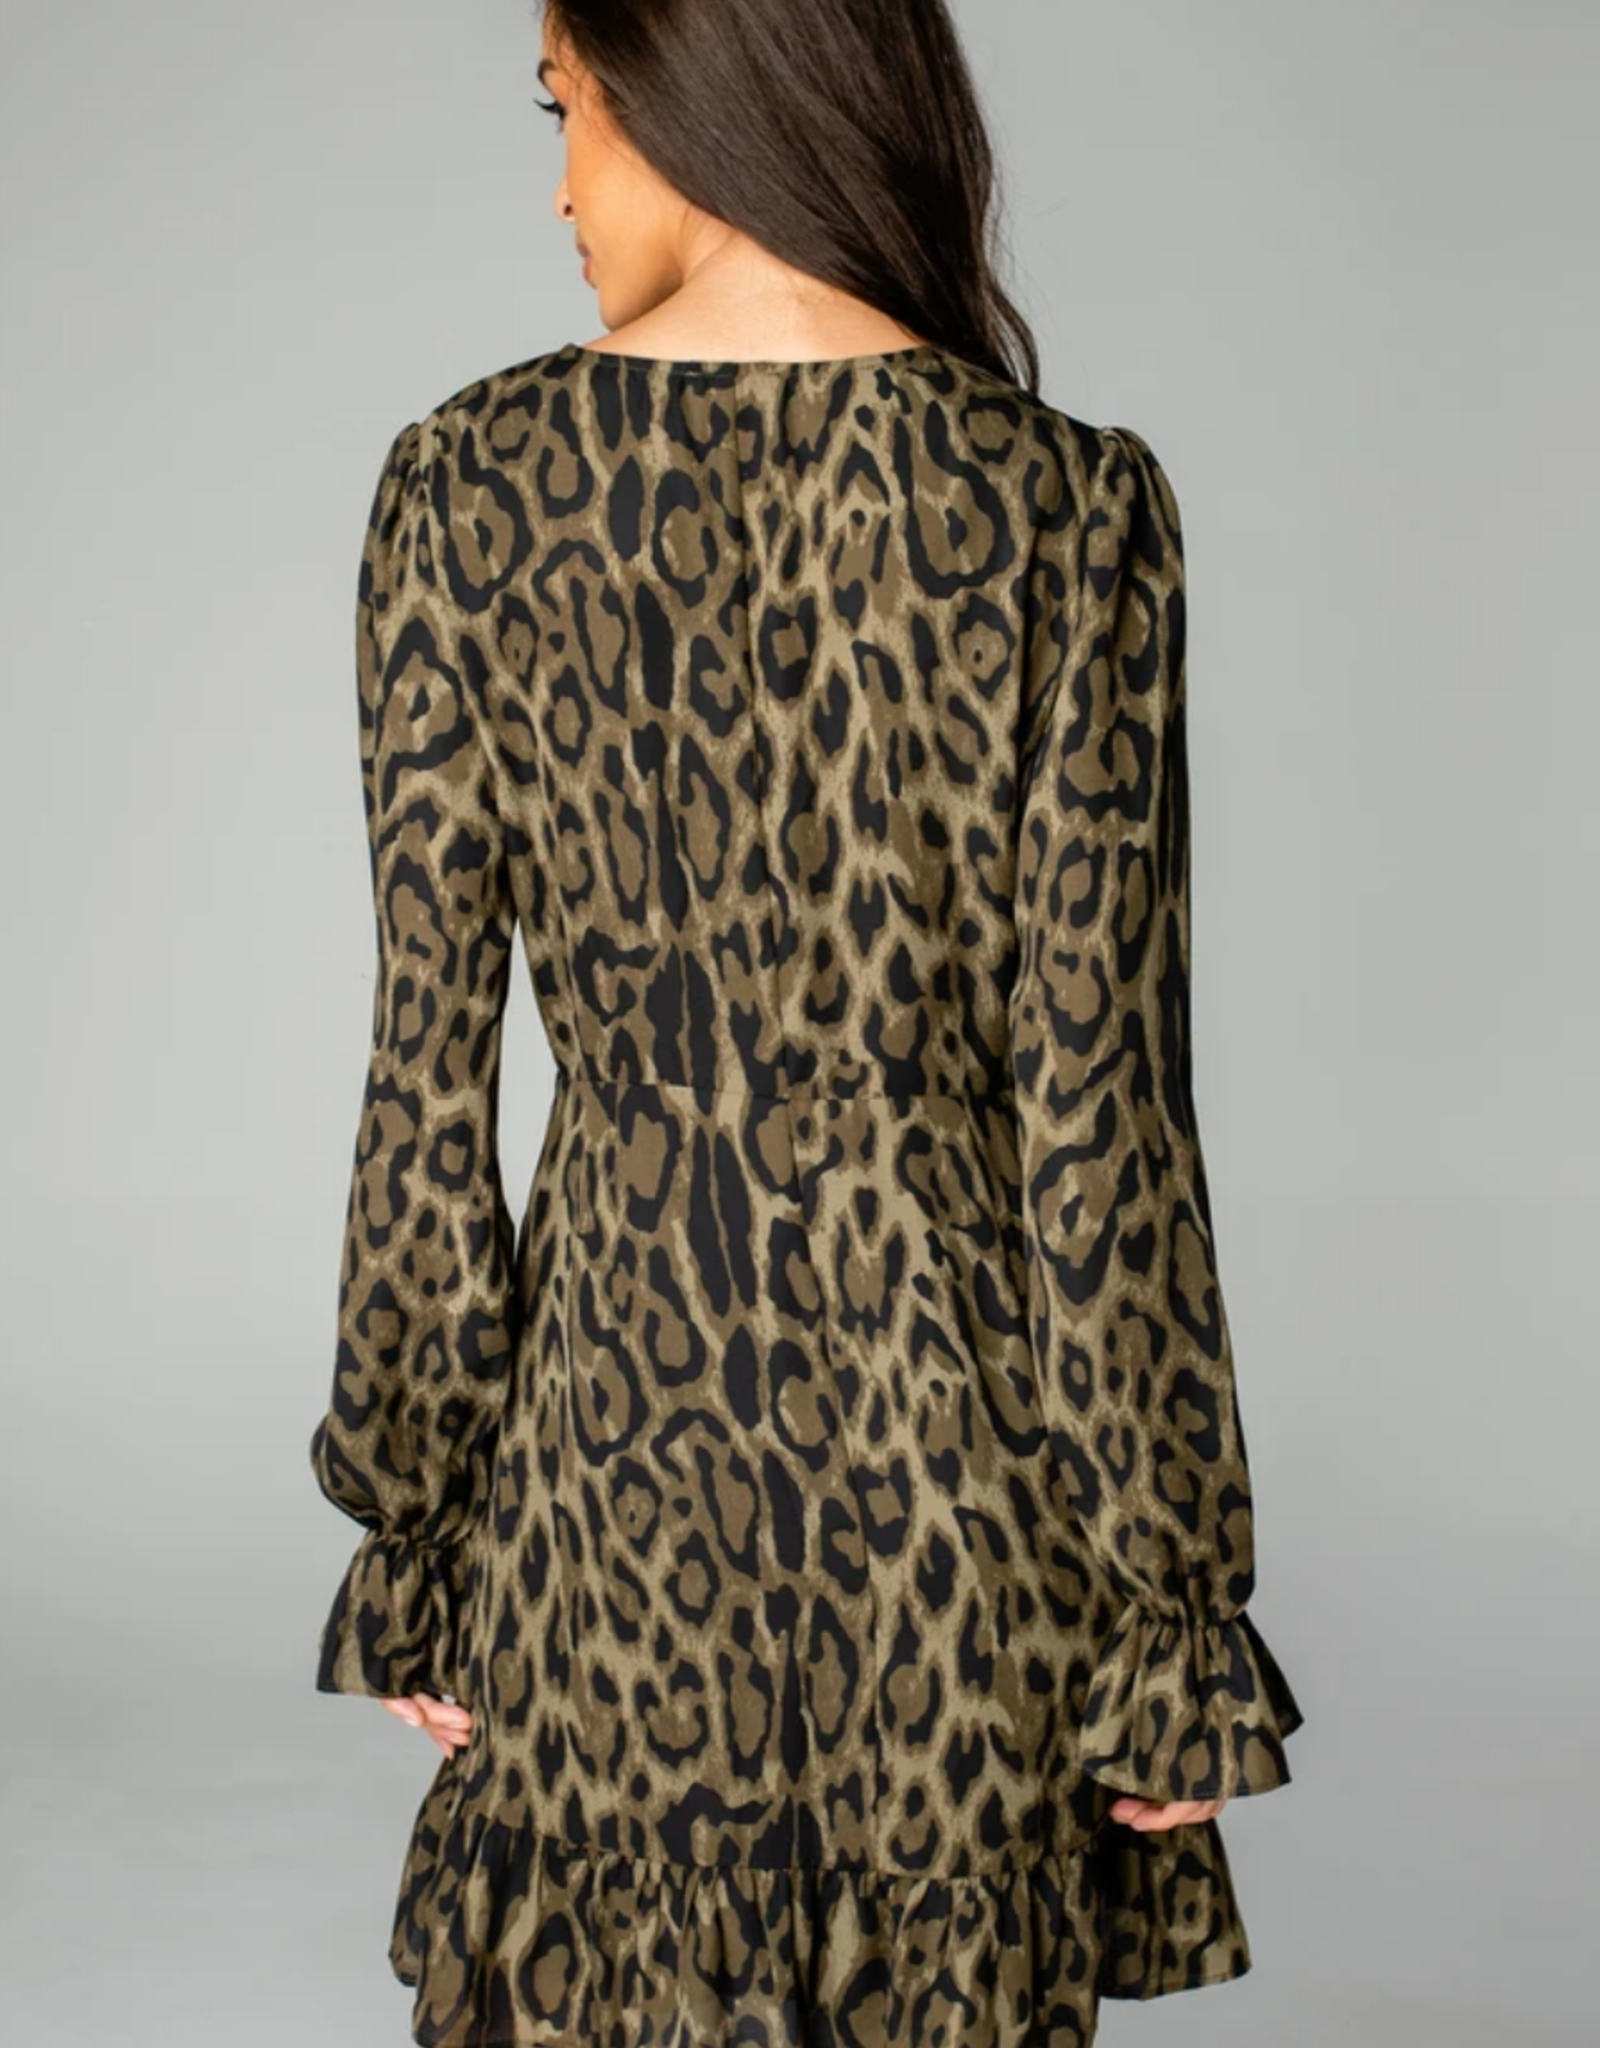 Buddy Love Alicia Long Sleeve Dress